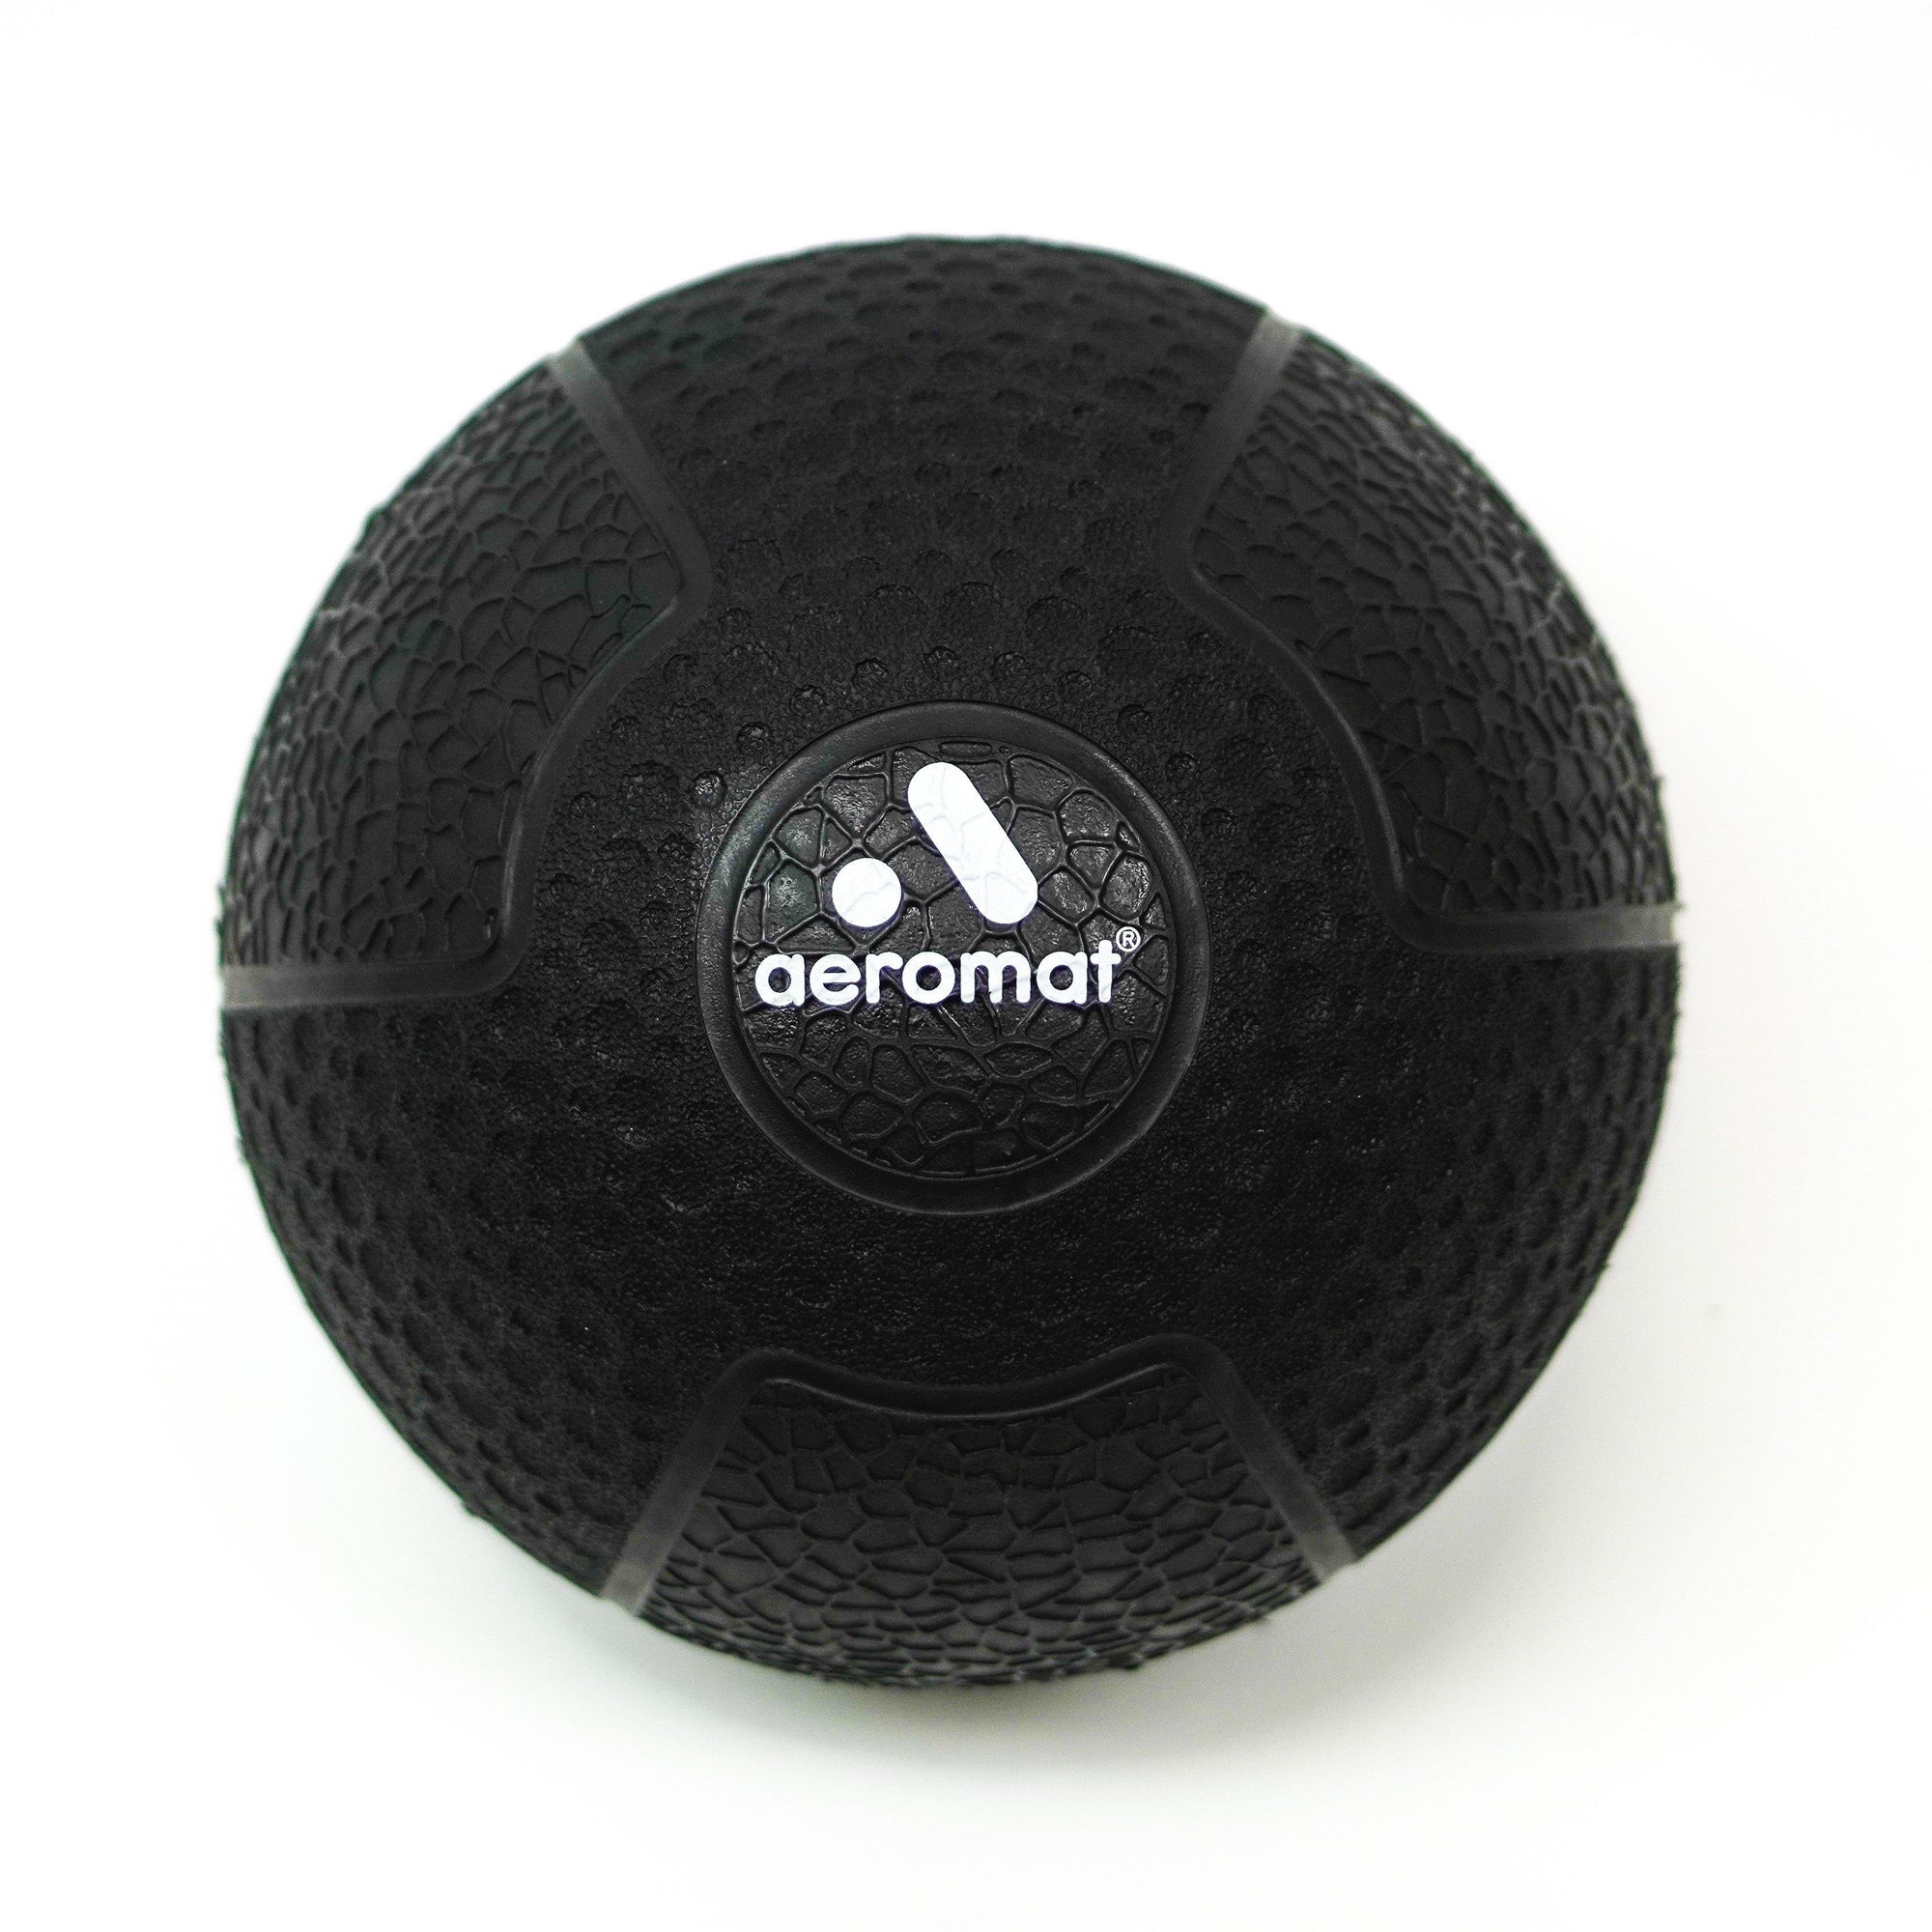 Aeromat Elite Wall Ball 4 lbs - 20 lbs